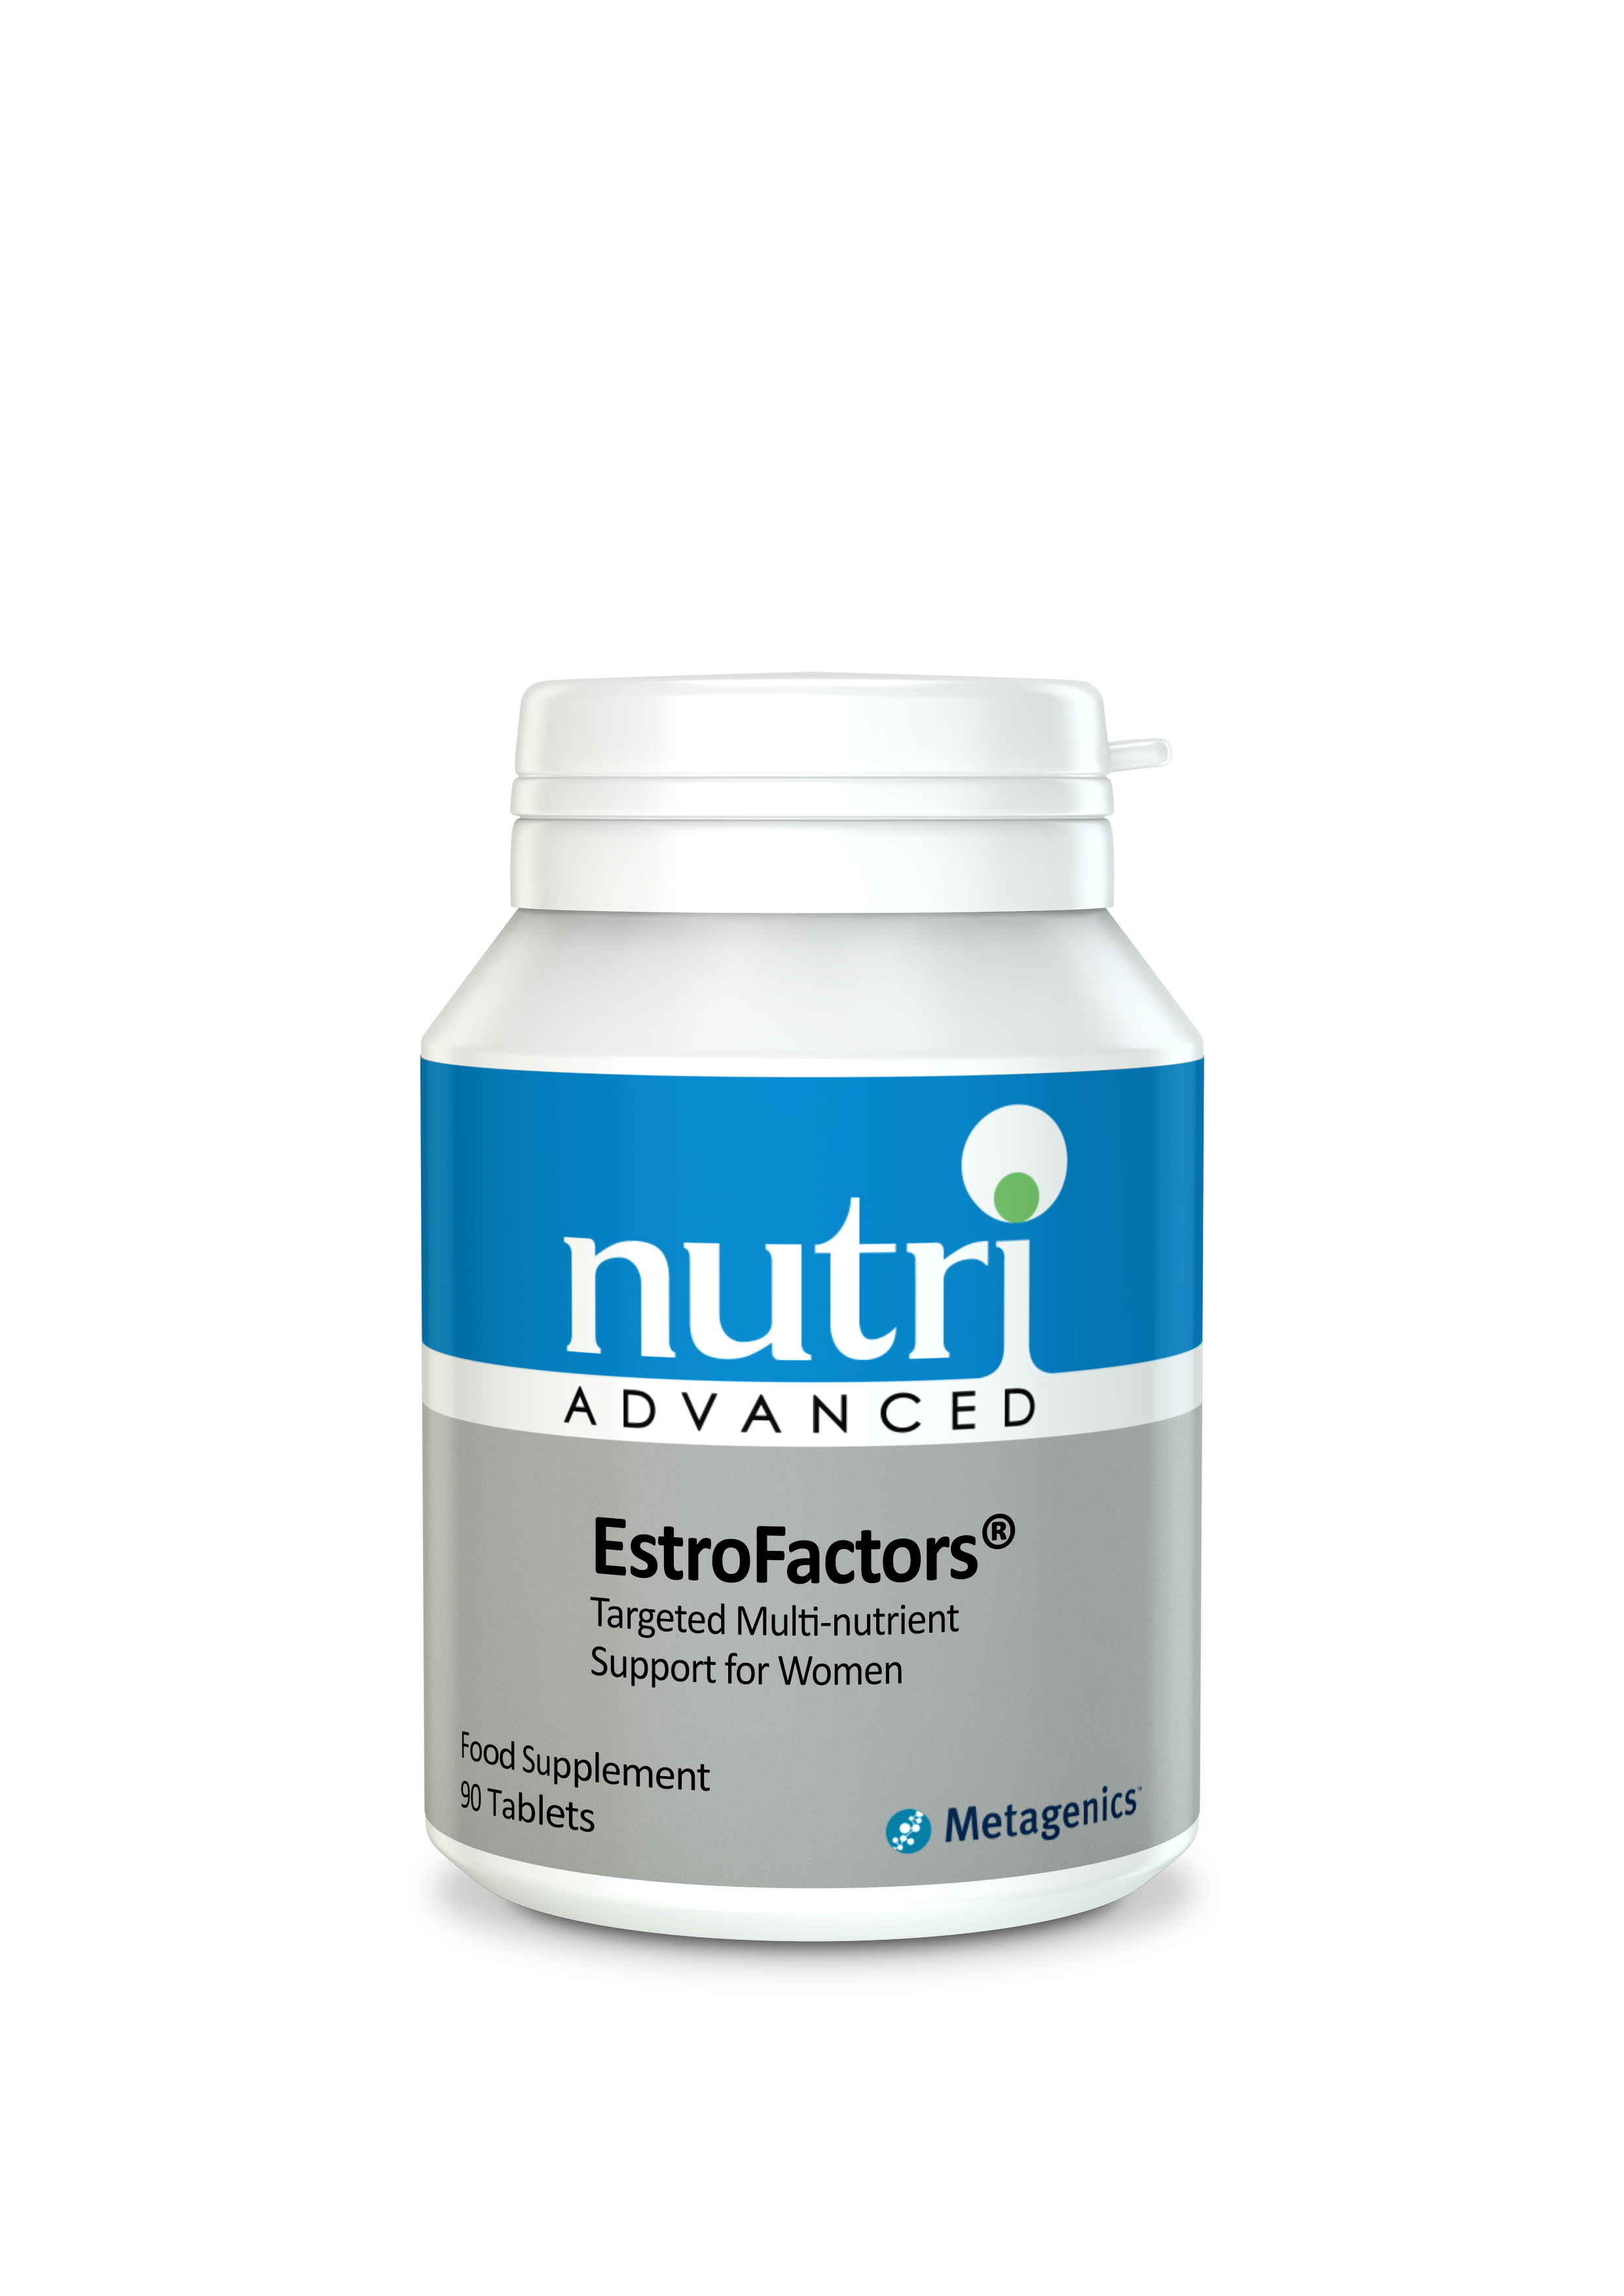 Nutri Advanced EstroFactors (90)